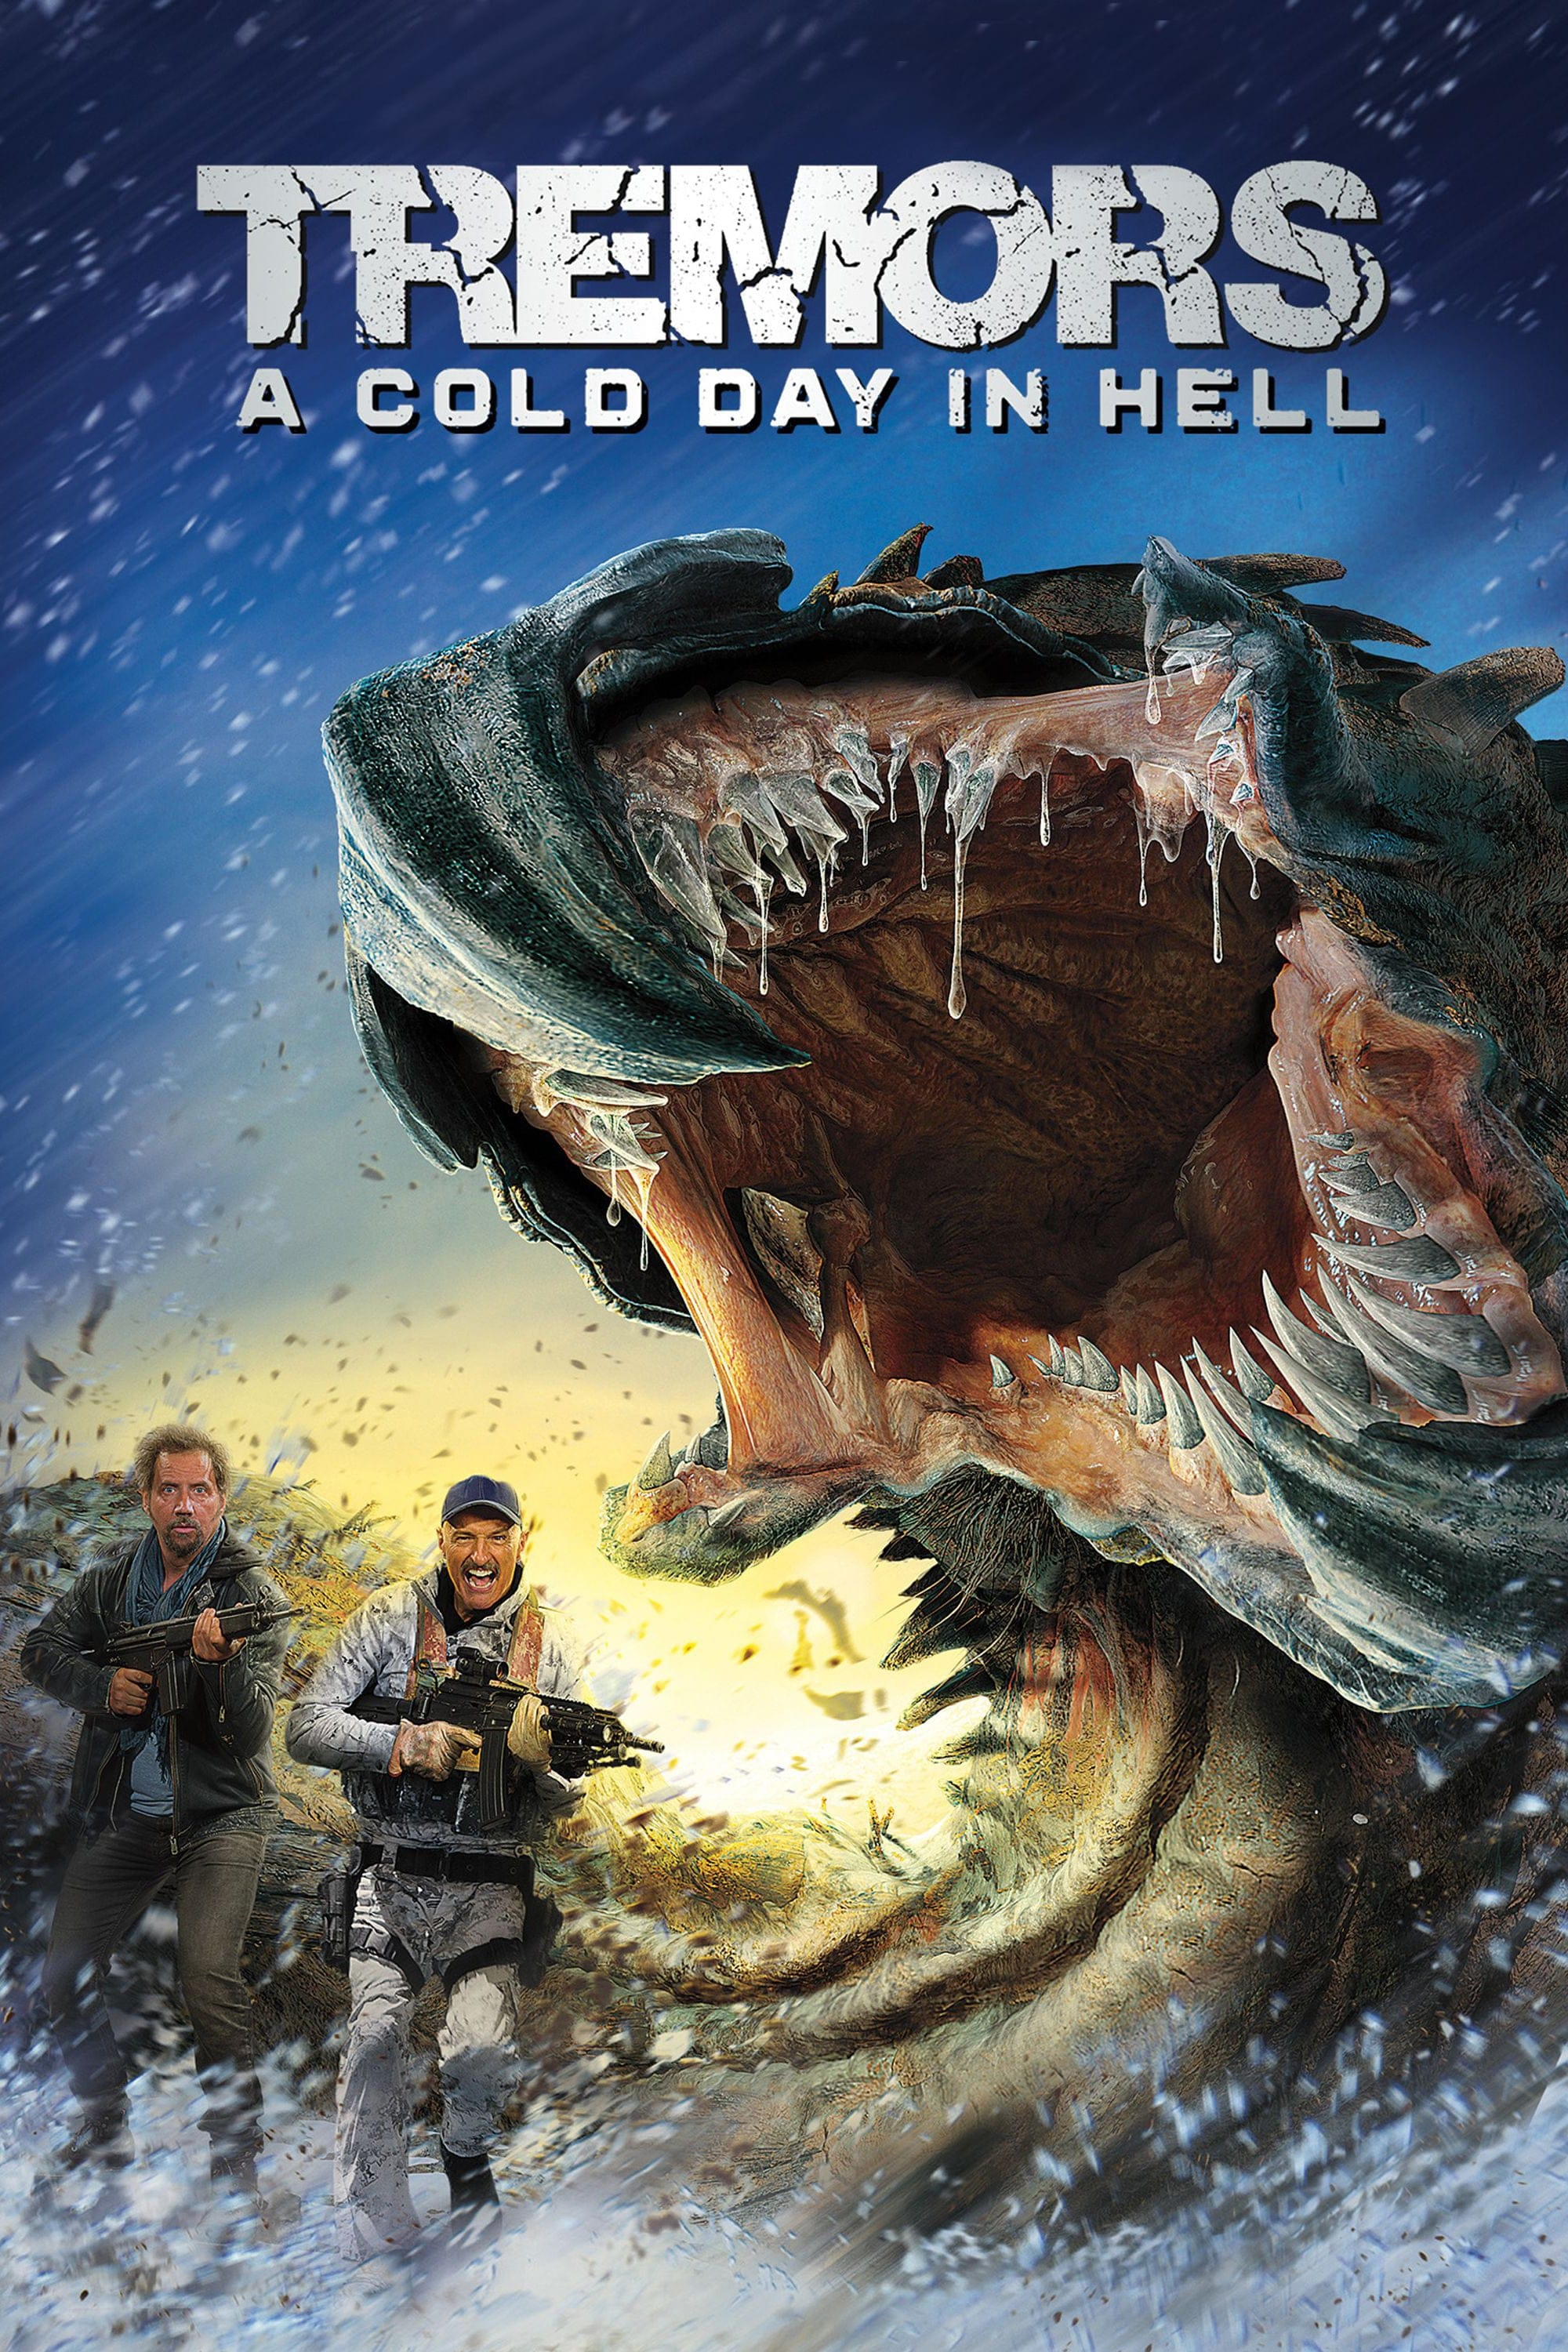 Regarder Tremors 6 – A Cold Day in Hell en streaming gratuit